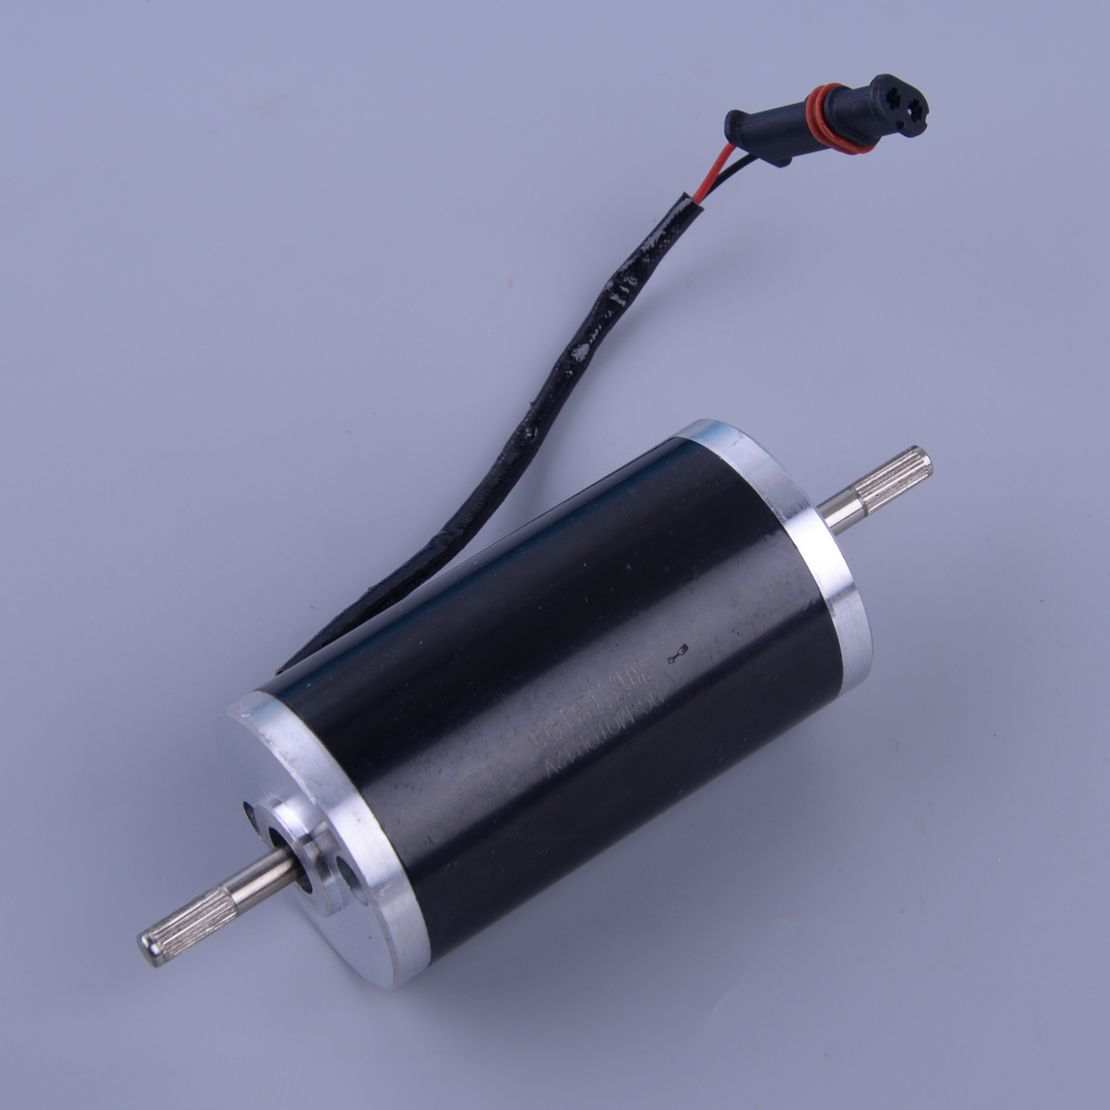 beler New 12V Combustion Air Motor 4500 RPM Fit For Eberspacher Heater D4 Air Diesel Parking Heater Replacement